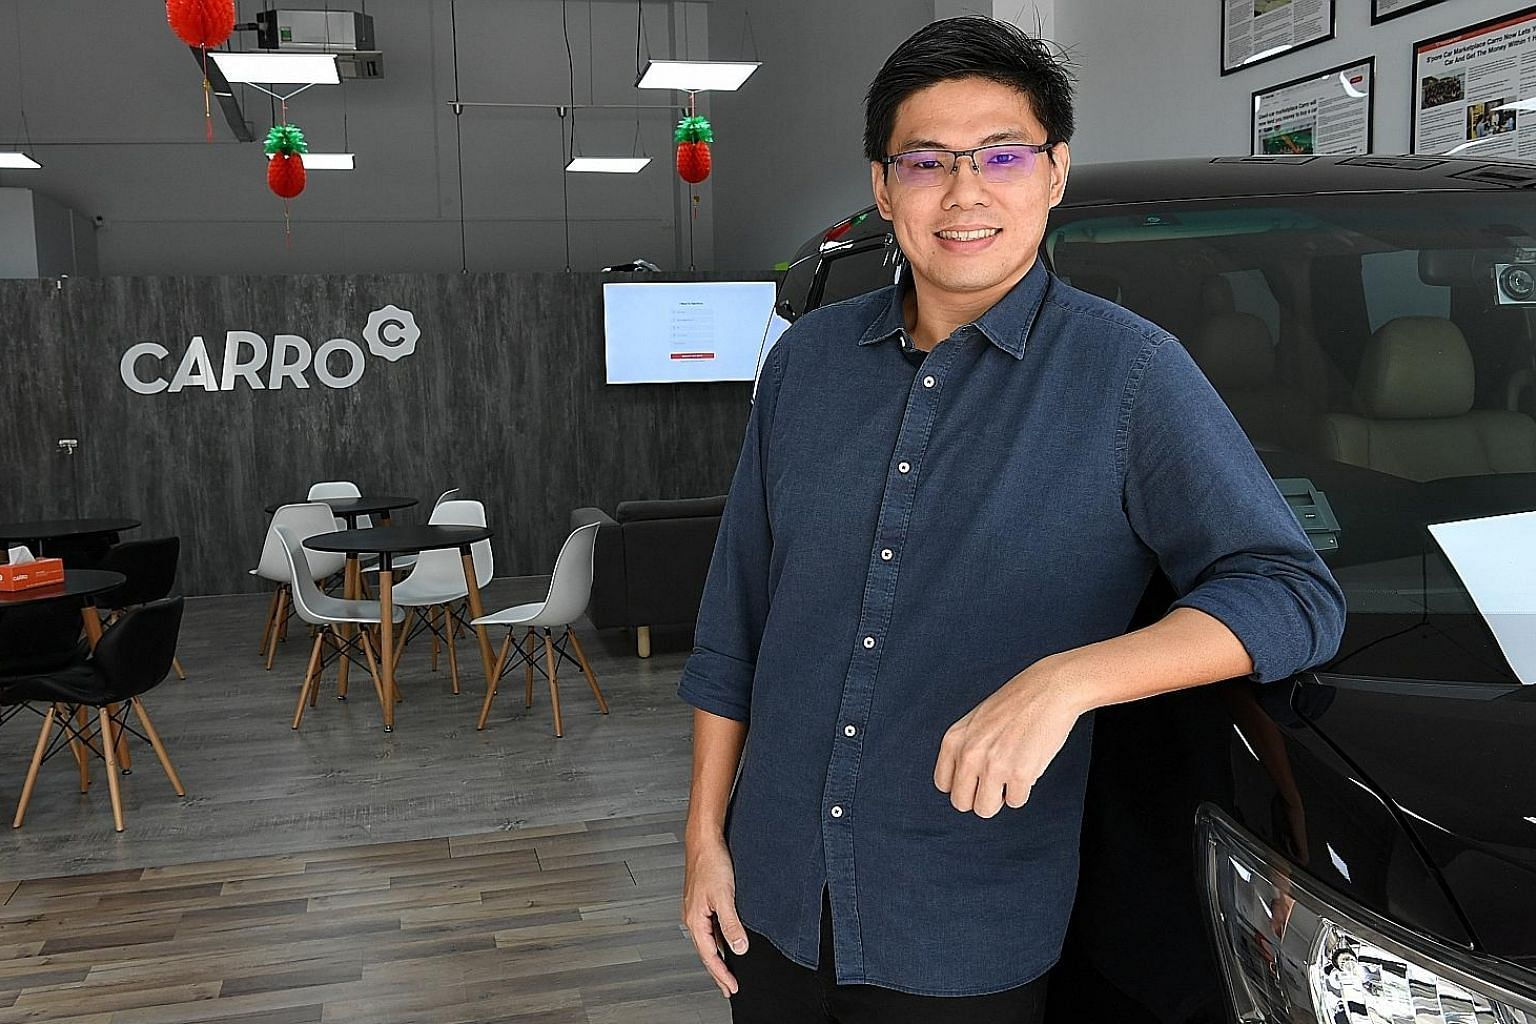 Mr Kelvin Chng, co-founder of Carro, is also involved in an infant clothing distribution and e-commerce business that he started with his wife about seven years ago after they graduated. ST PHOTO: KHALID BABA